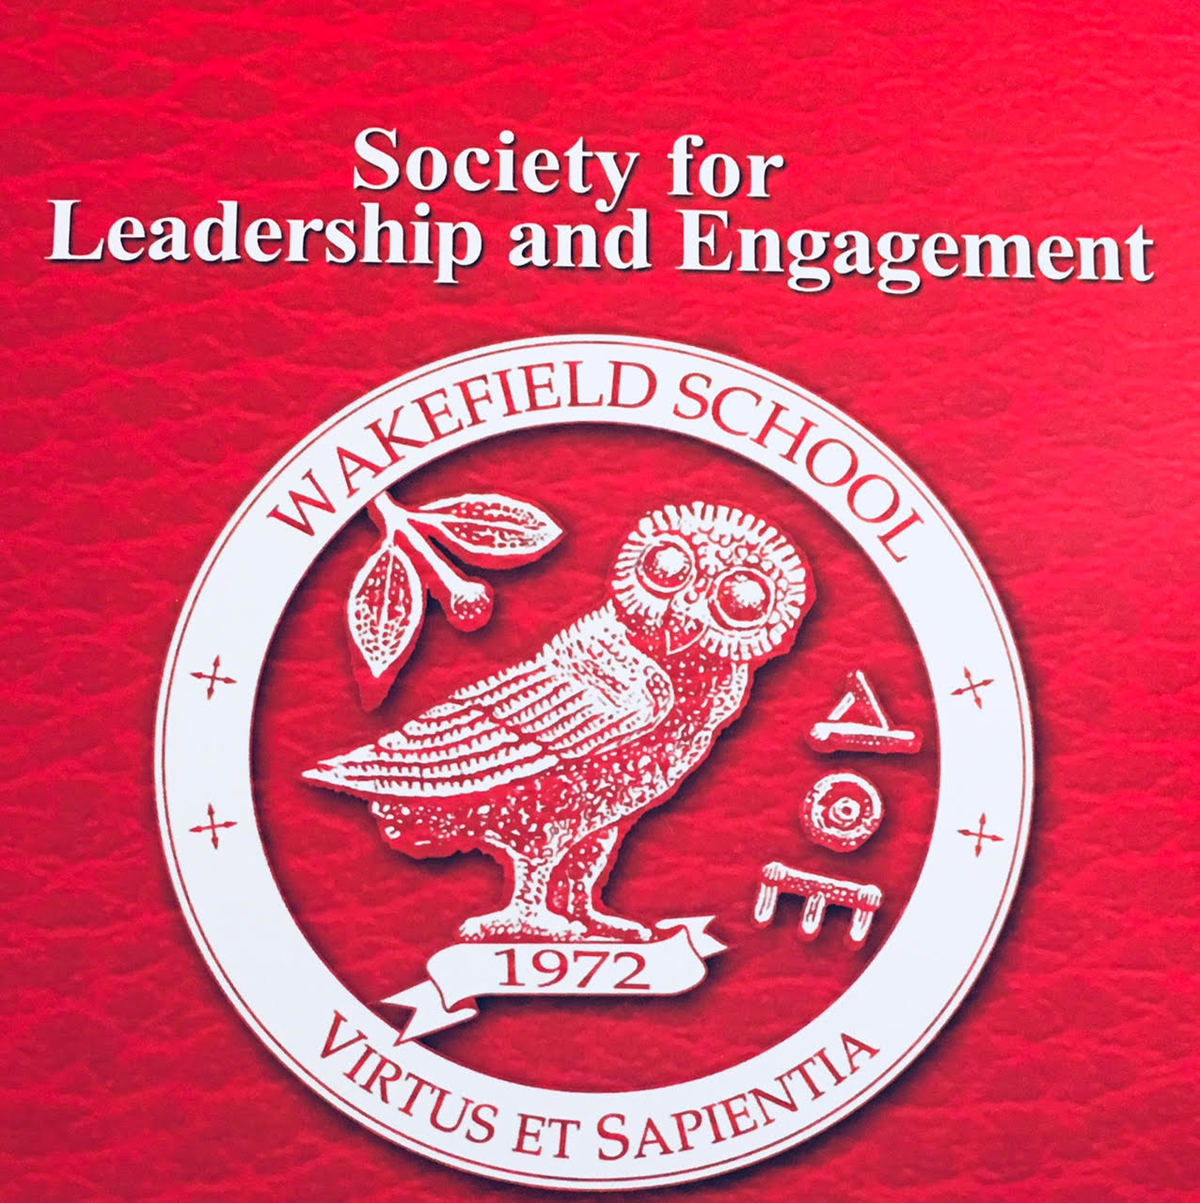 The Society for Leadership and Engagement